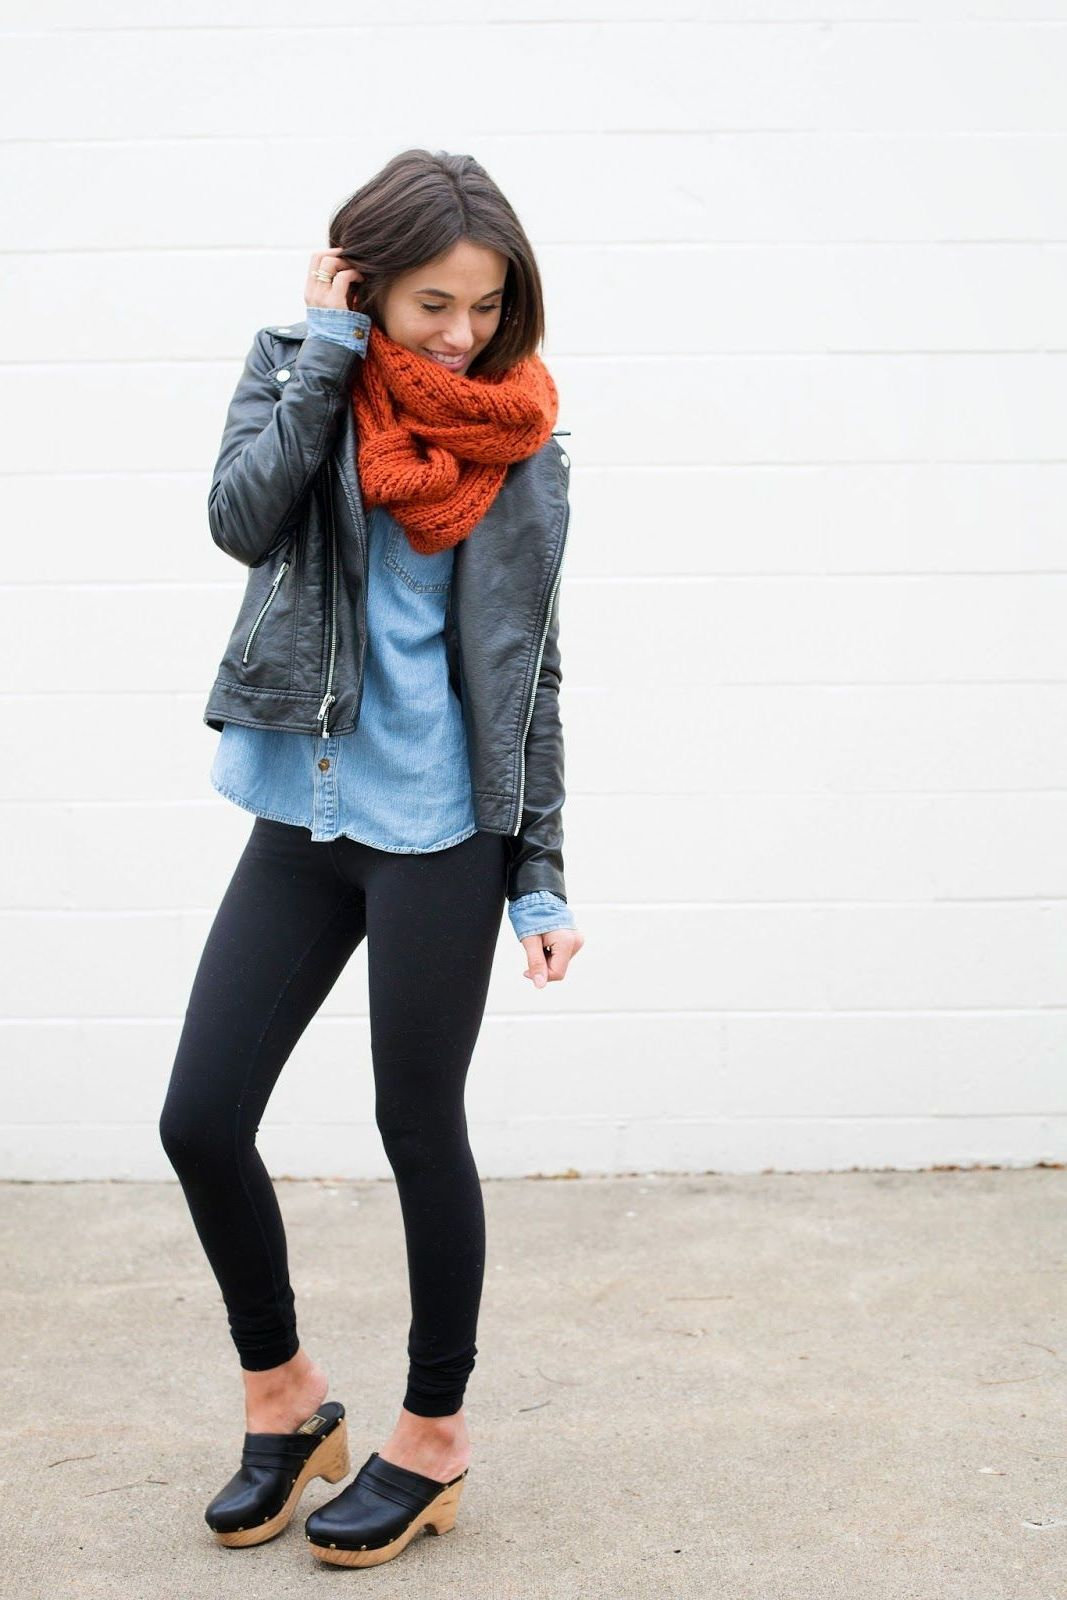 Infinity Scarves Winter Trend 2019 Scarf trends, Winter